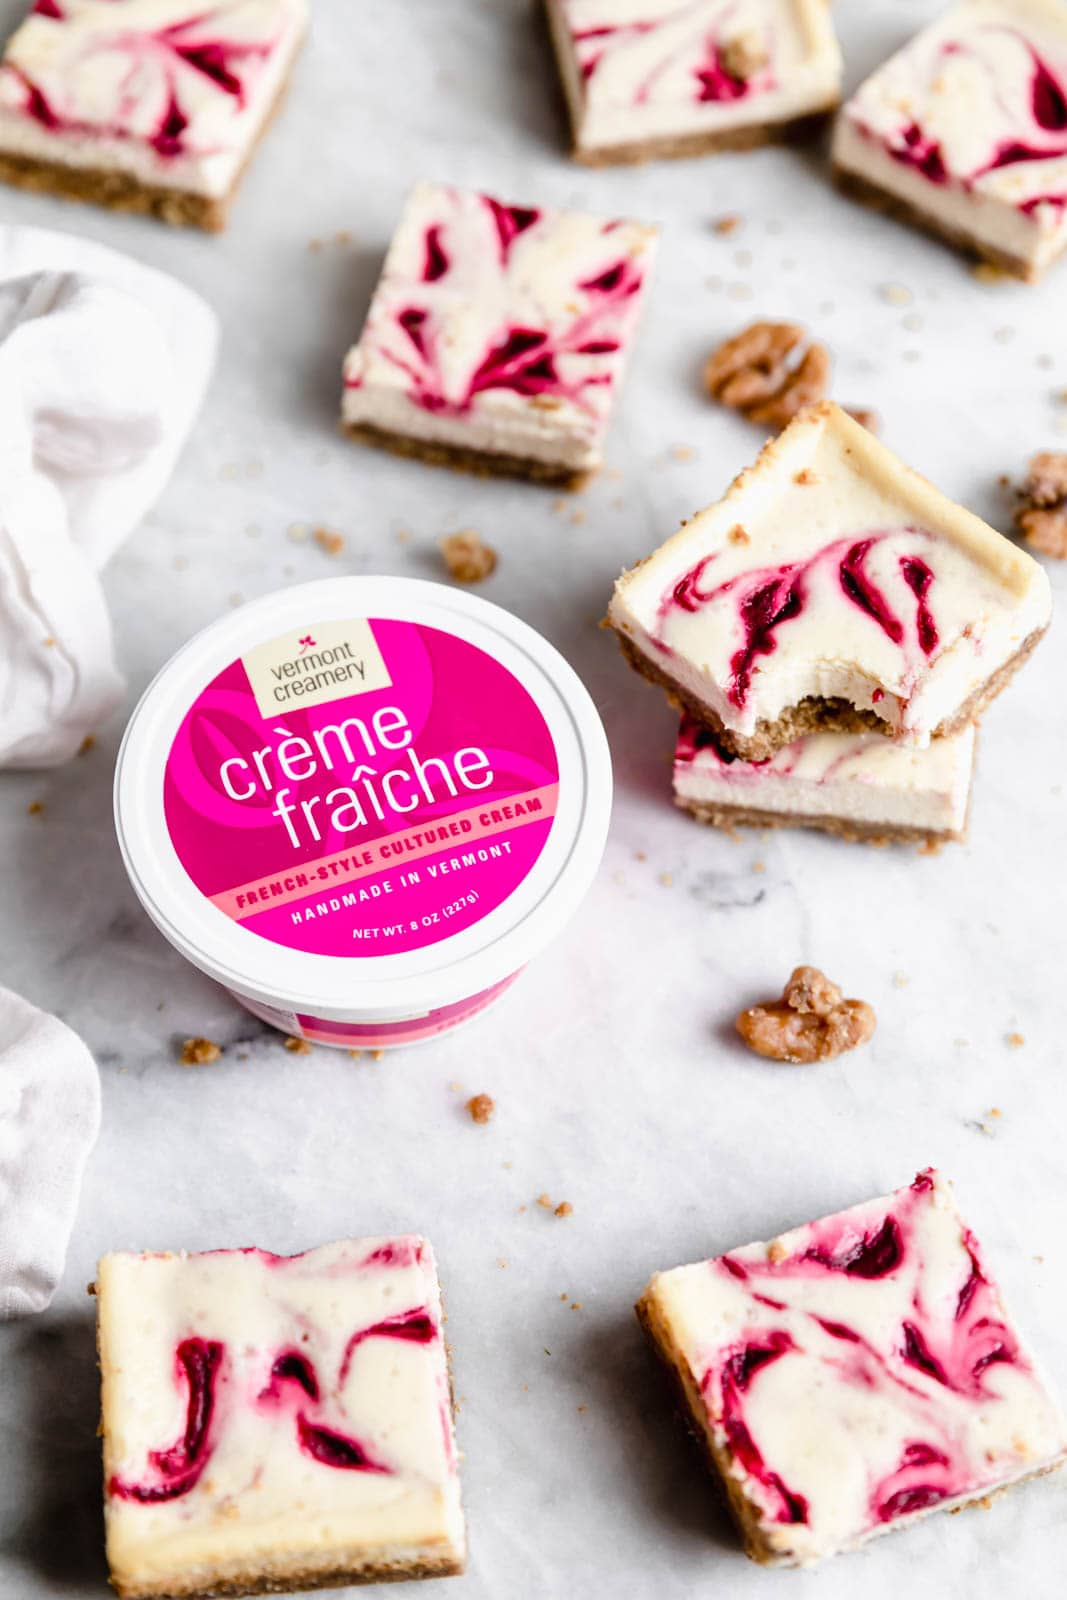 Walnut Cranberry Cheesecake Bars with container of creme fraiche